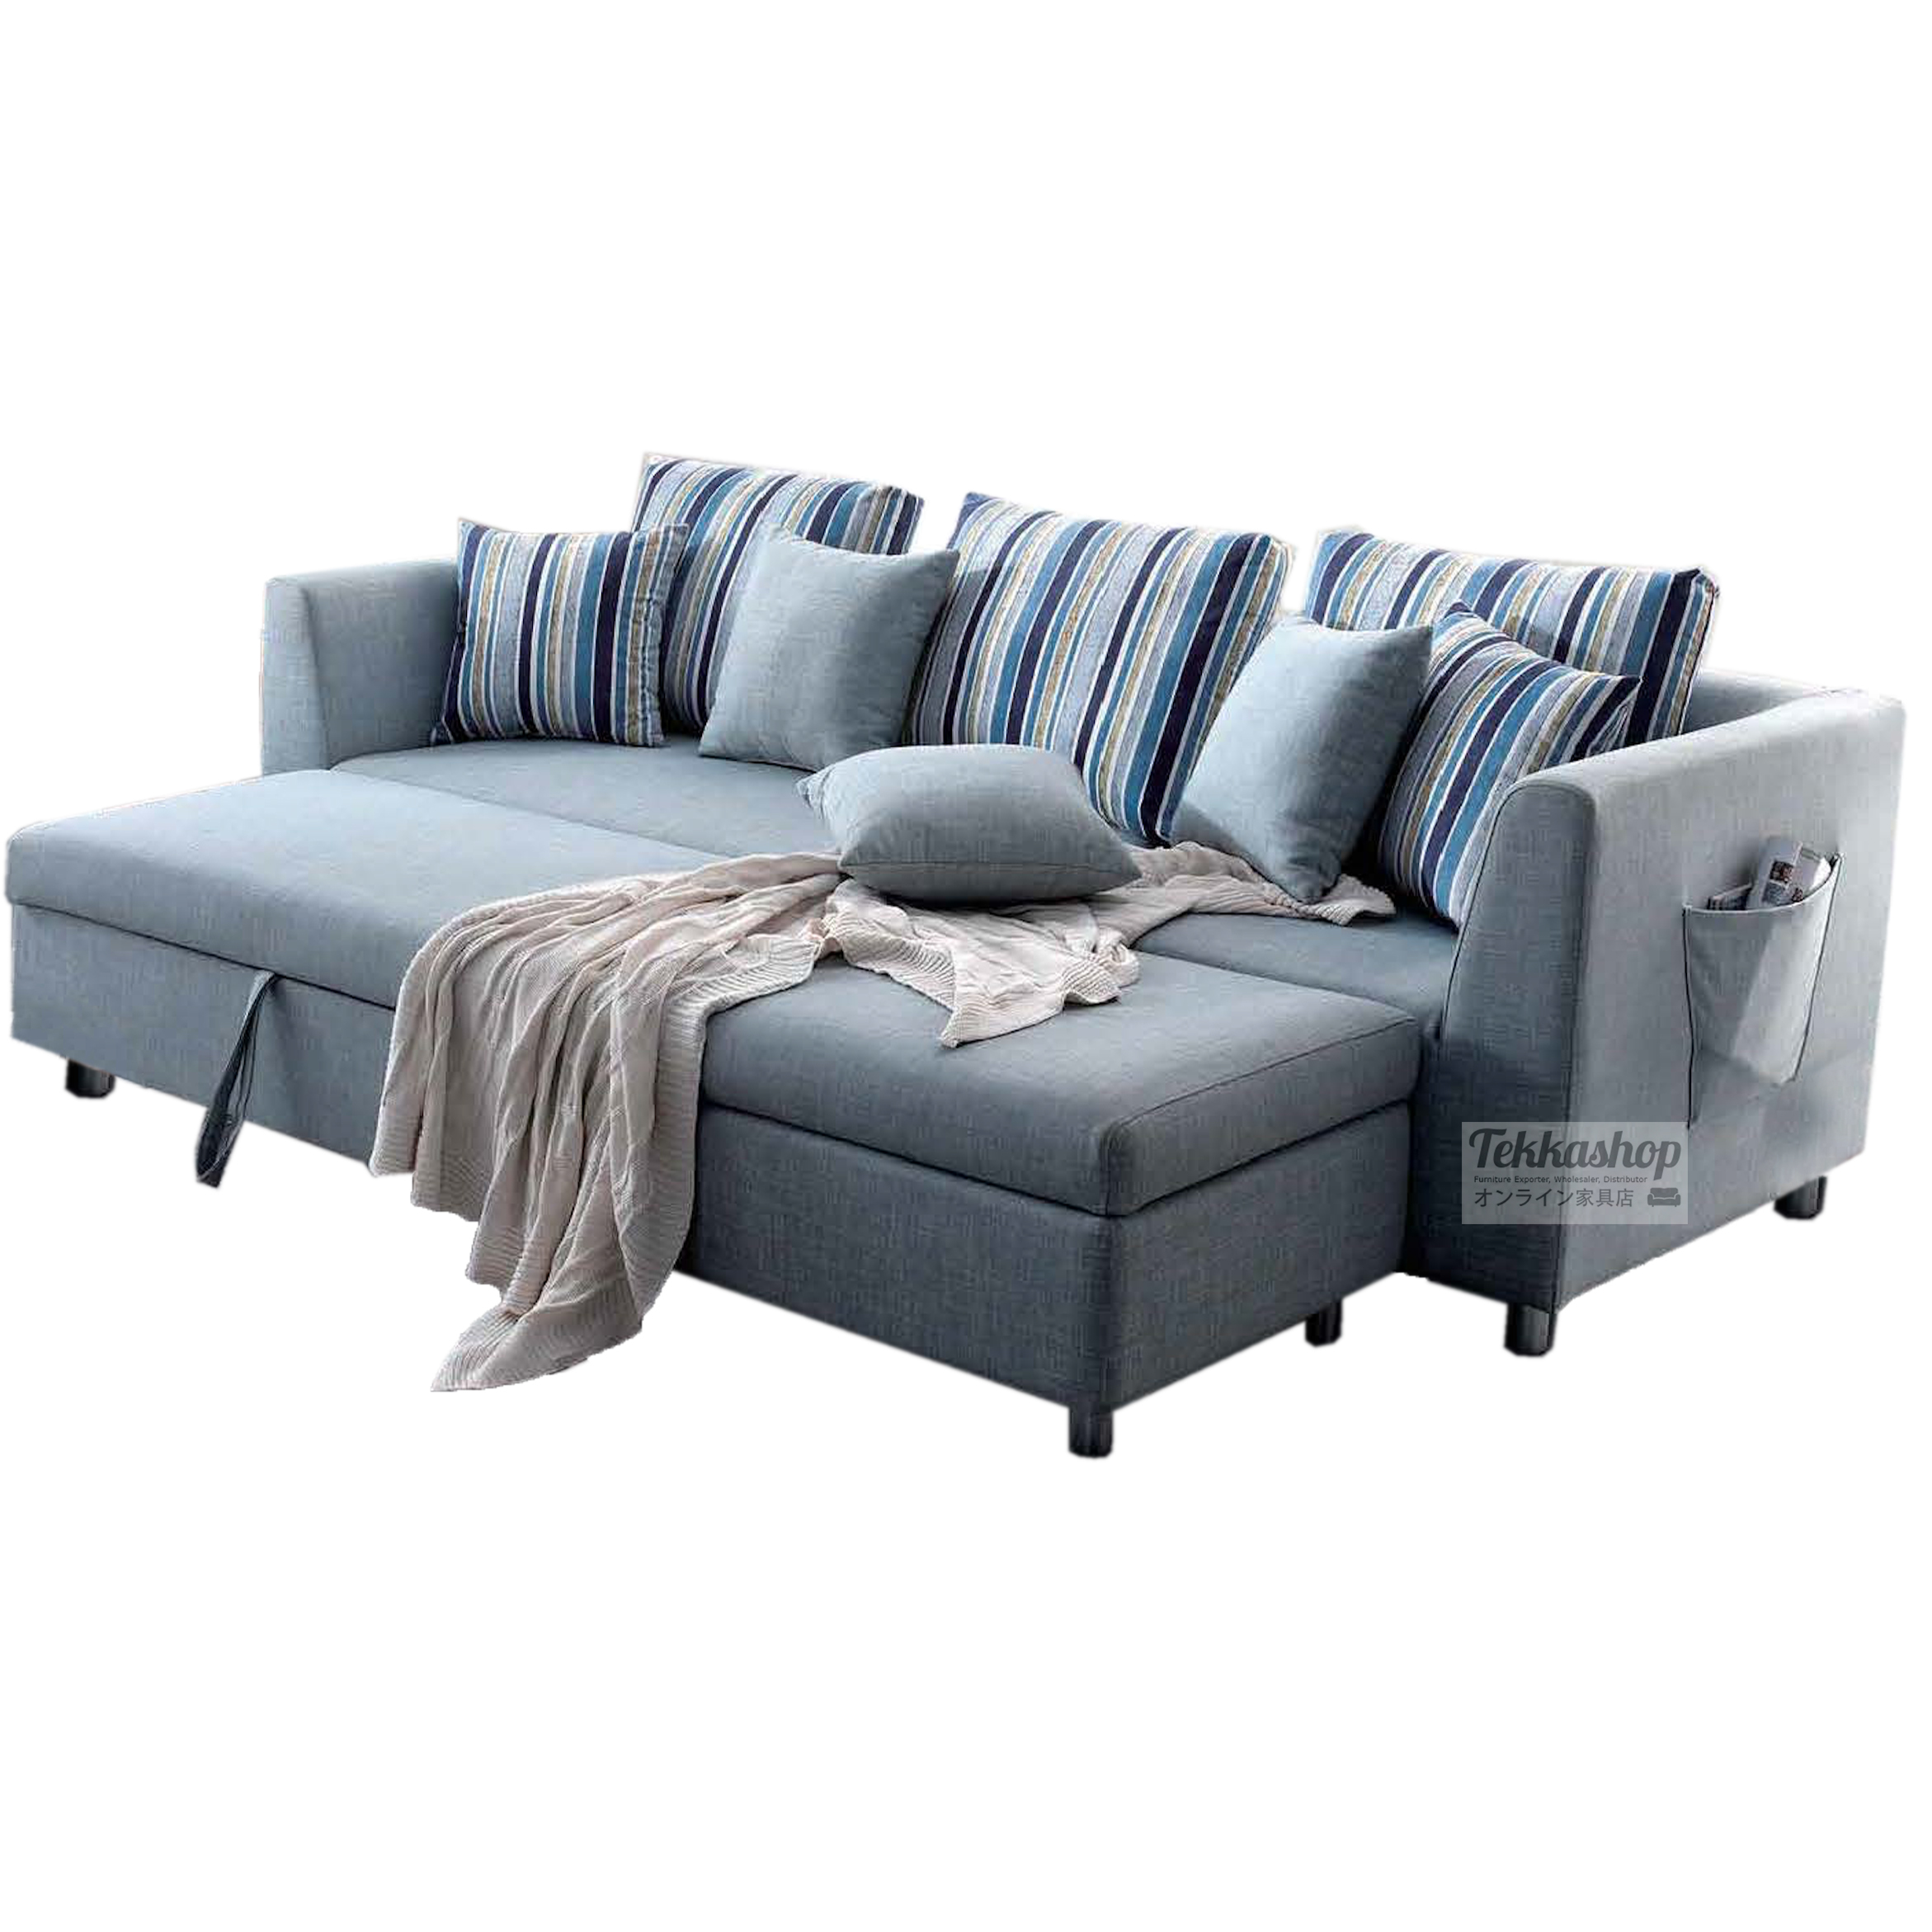 Tekkashop Gsfb07 Multi Function Sofa Bed With Storage And Movable